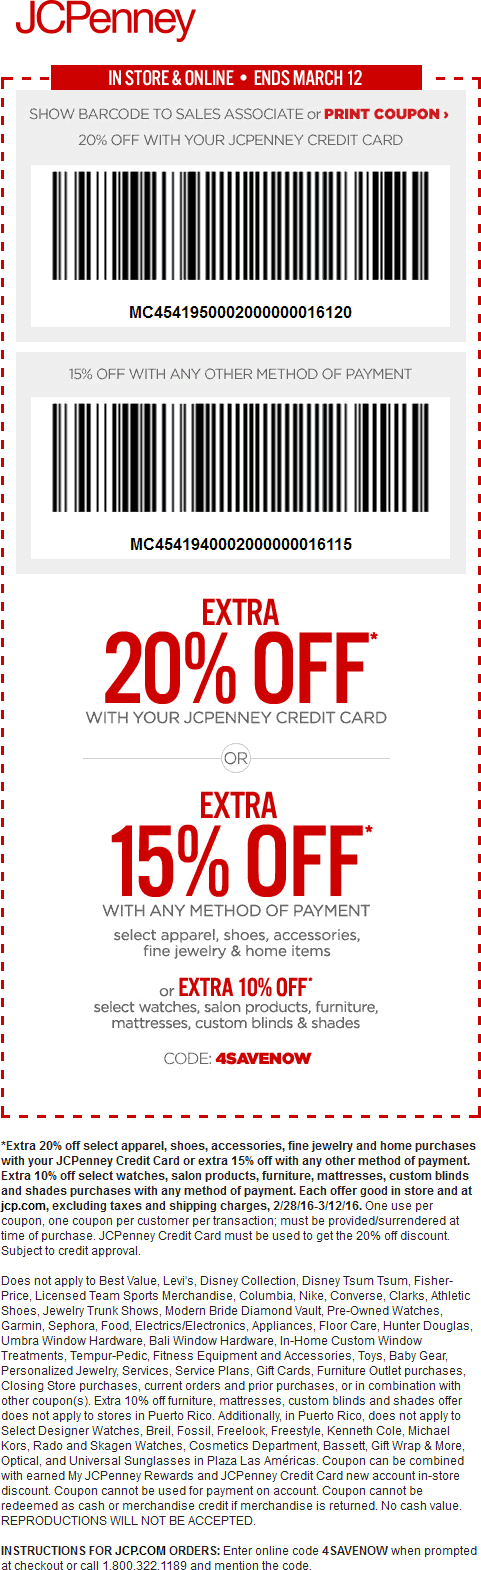 JCPenney Coupon September 2017 15% off at JCPenney, or online via promo code 4SAVENOW